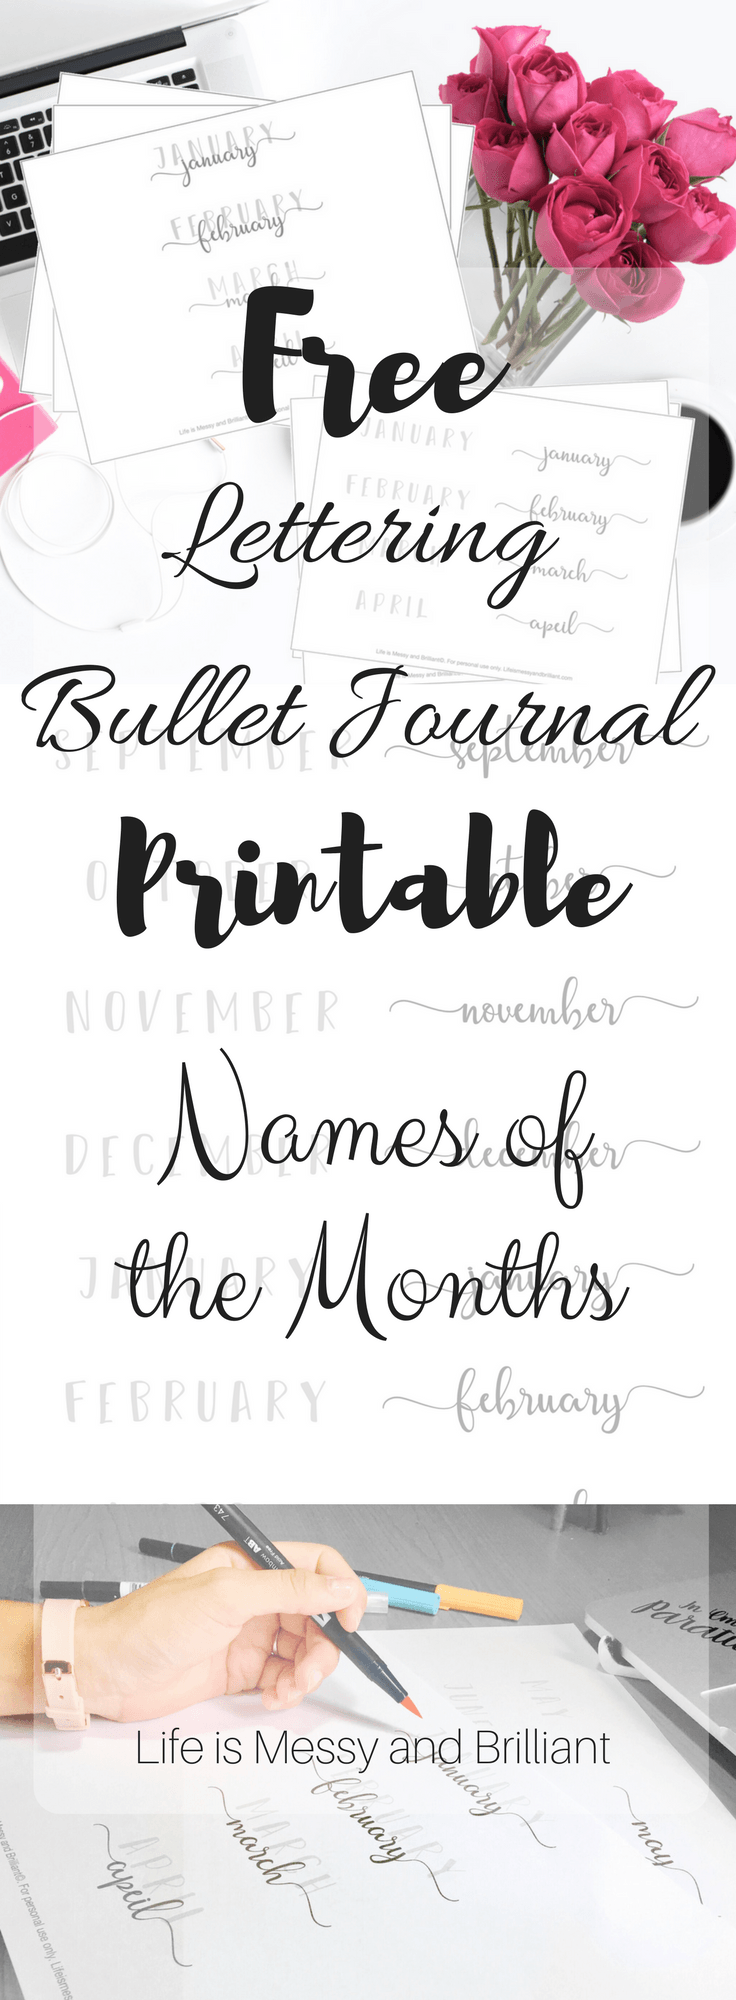 FREE Names of the Months Lettering Bullet Journal Printable